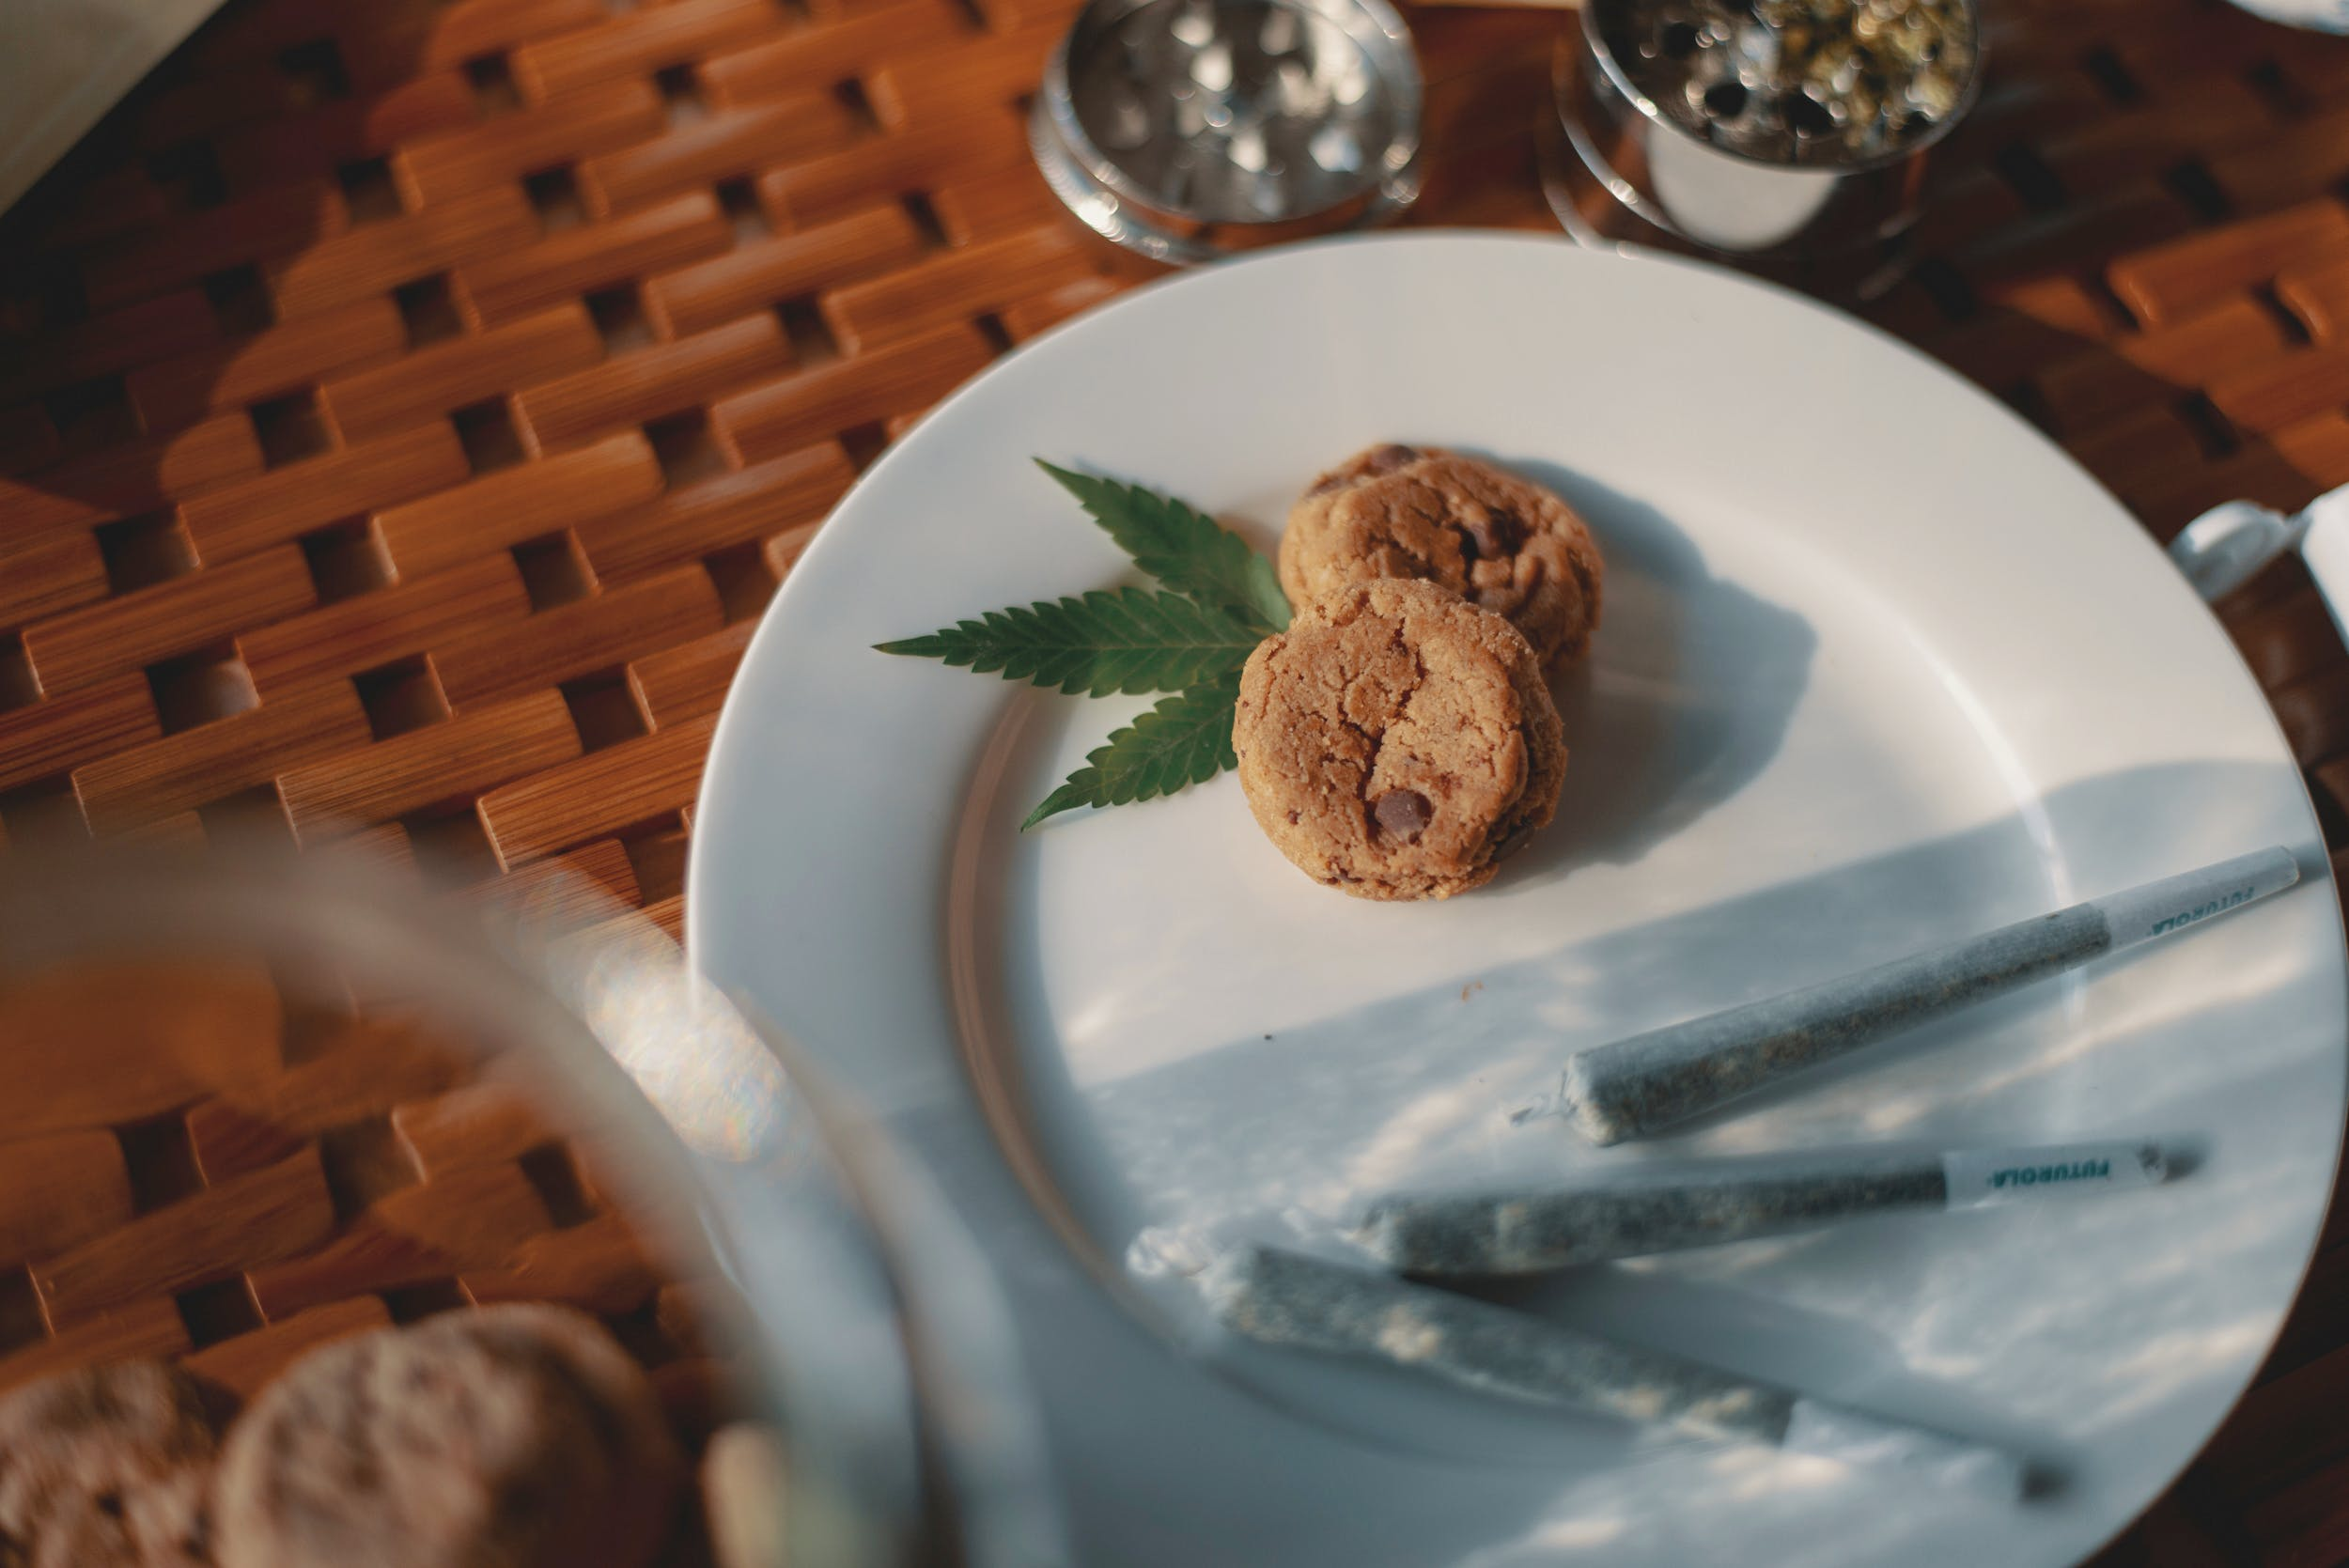 Best Weed Cookies 32 These Are The Best Weed Cookies Weve Ever Tried